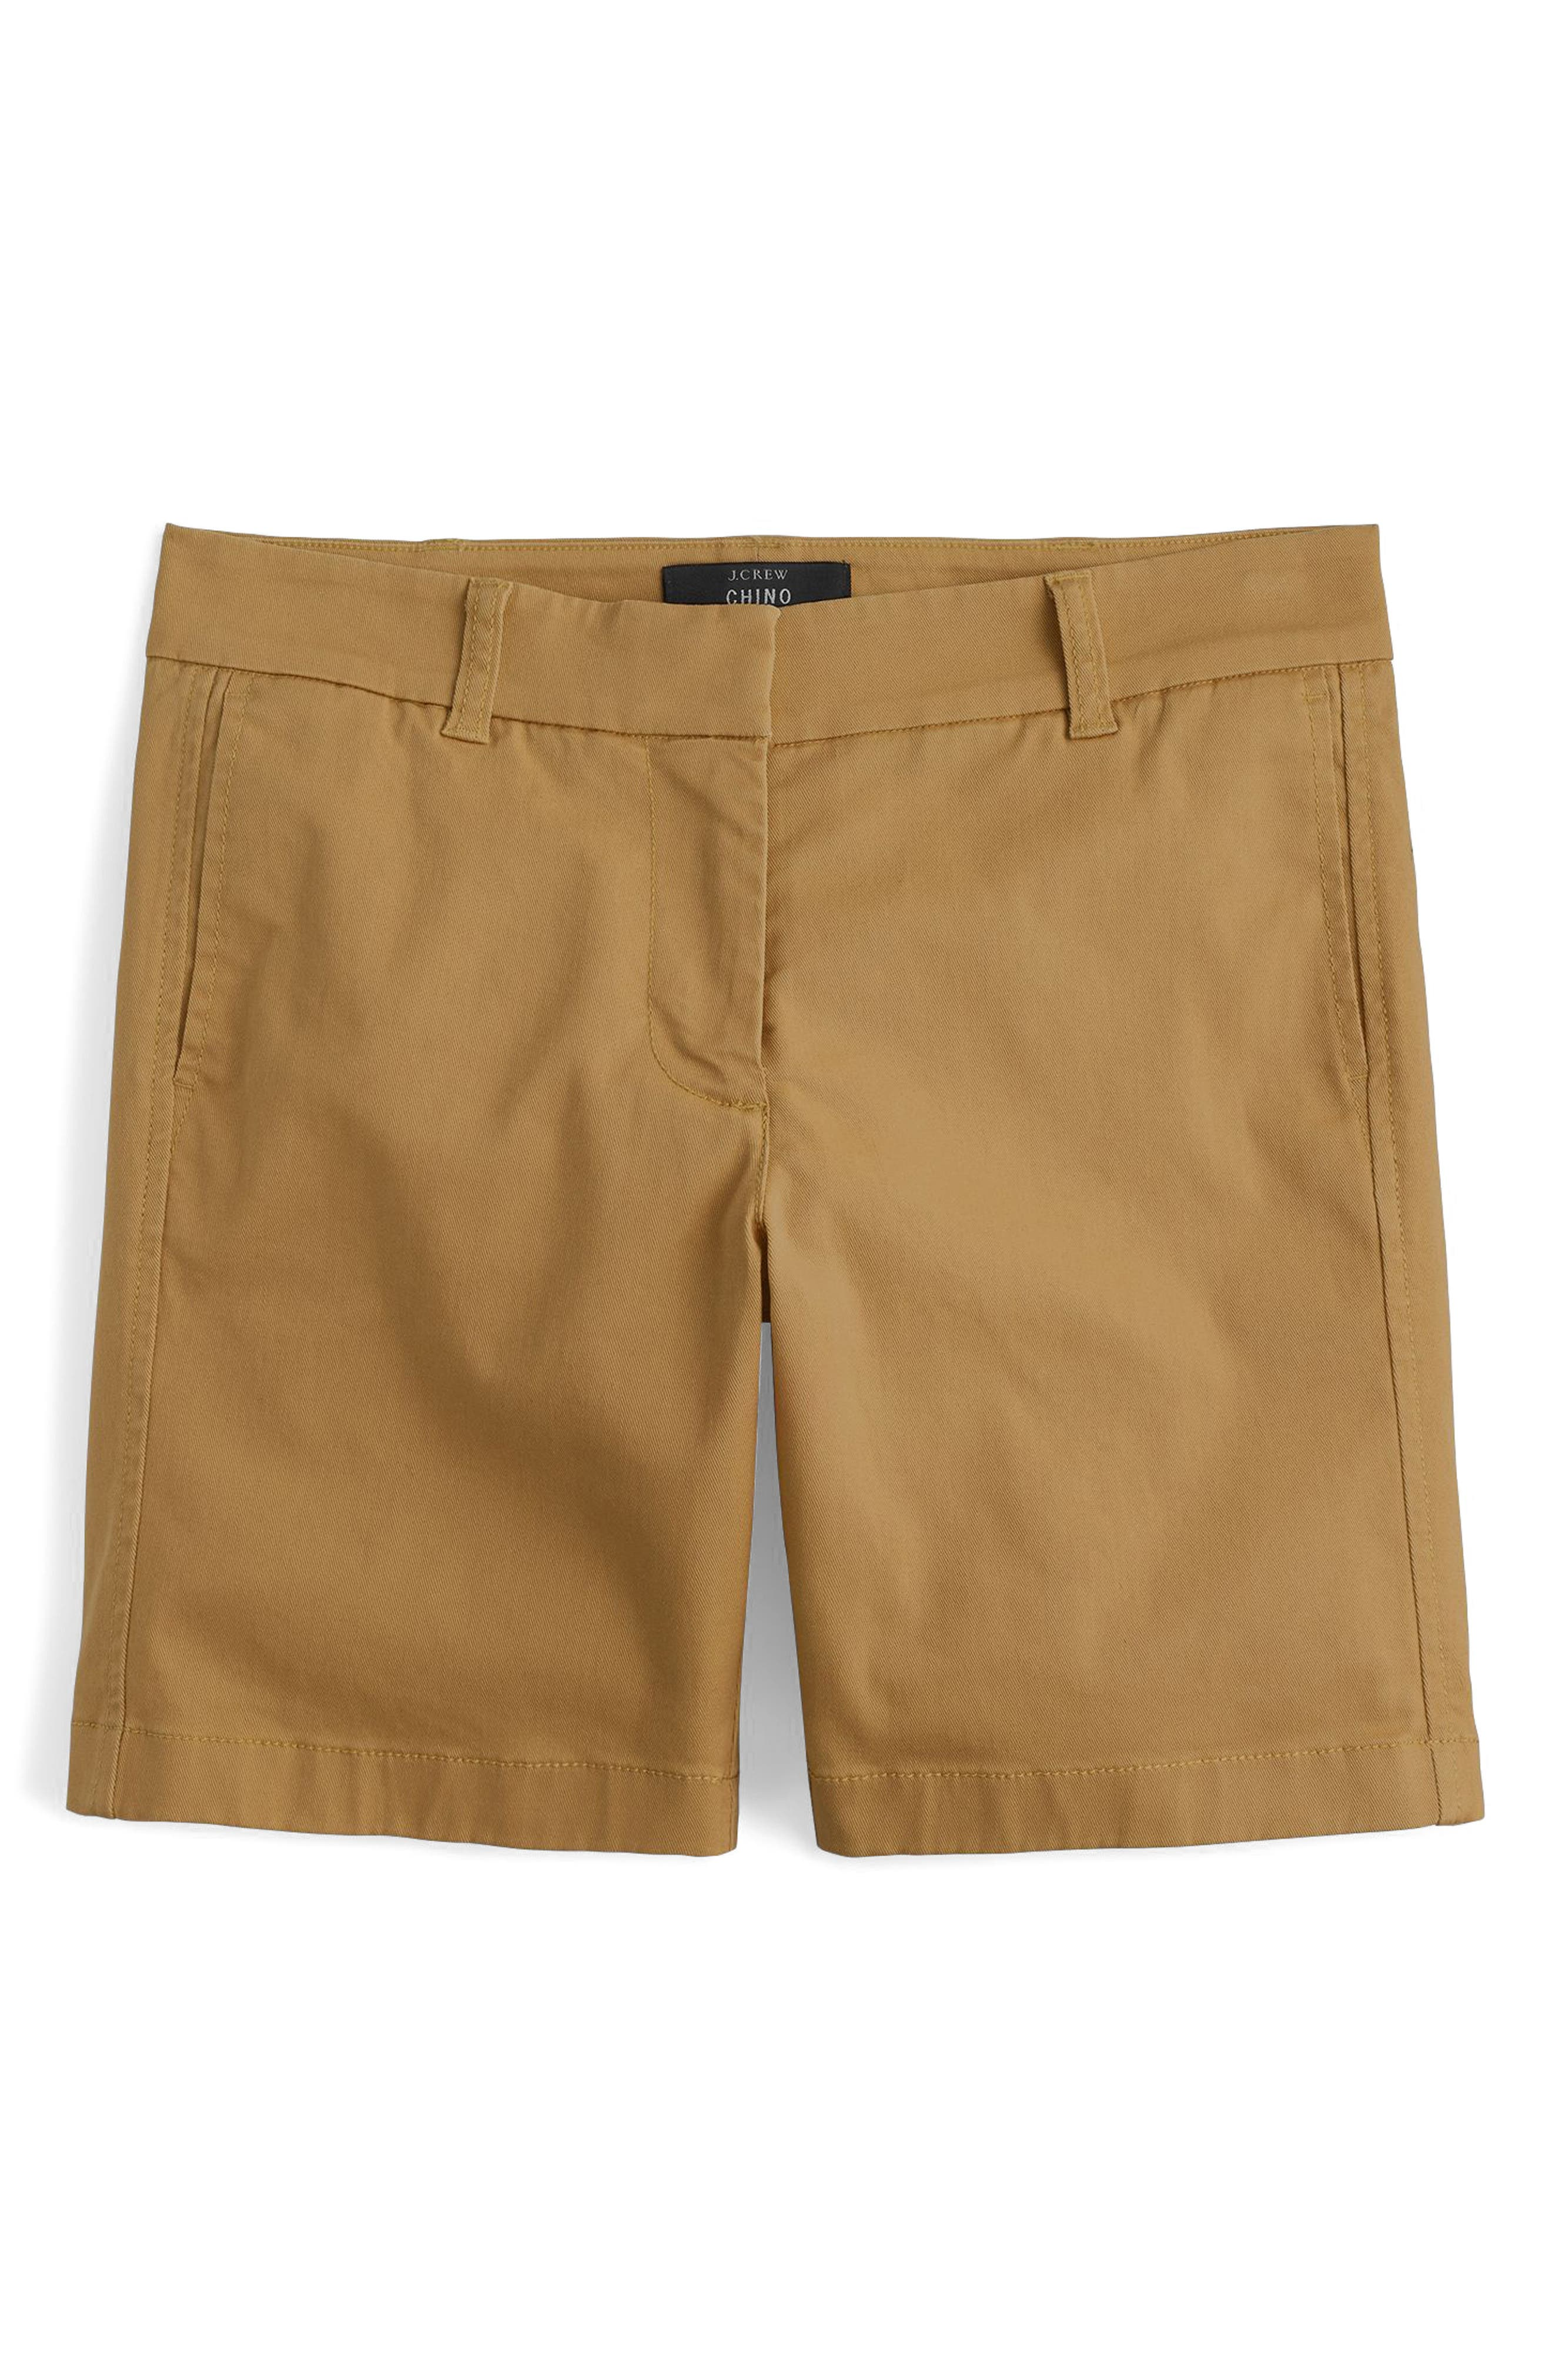 Stretch Cotton Chino Shorts,                             Main thumbnail 1, color,                             Honey Brown